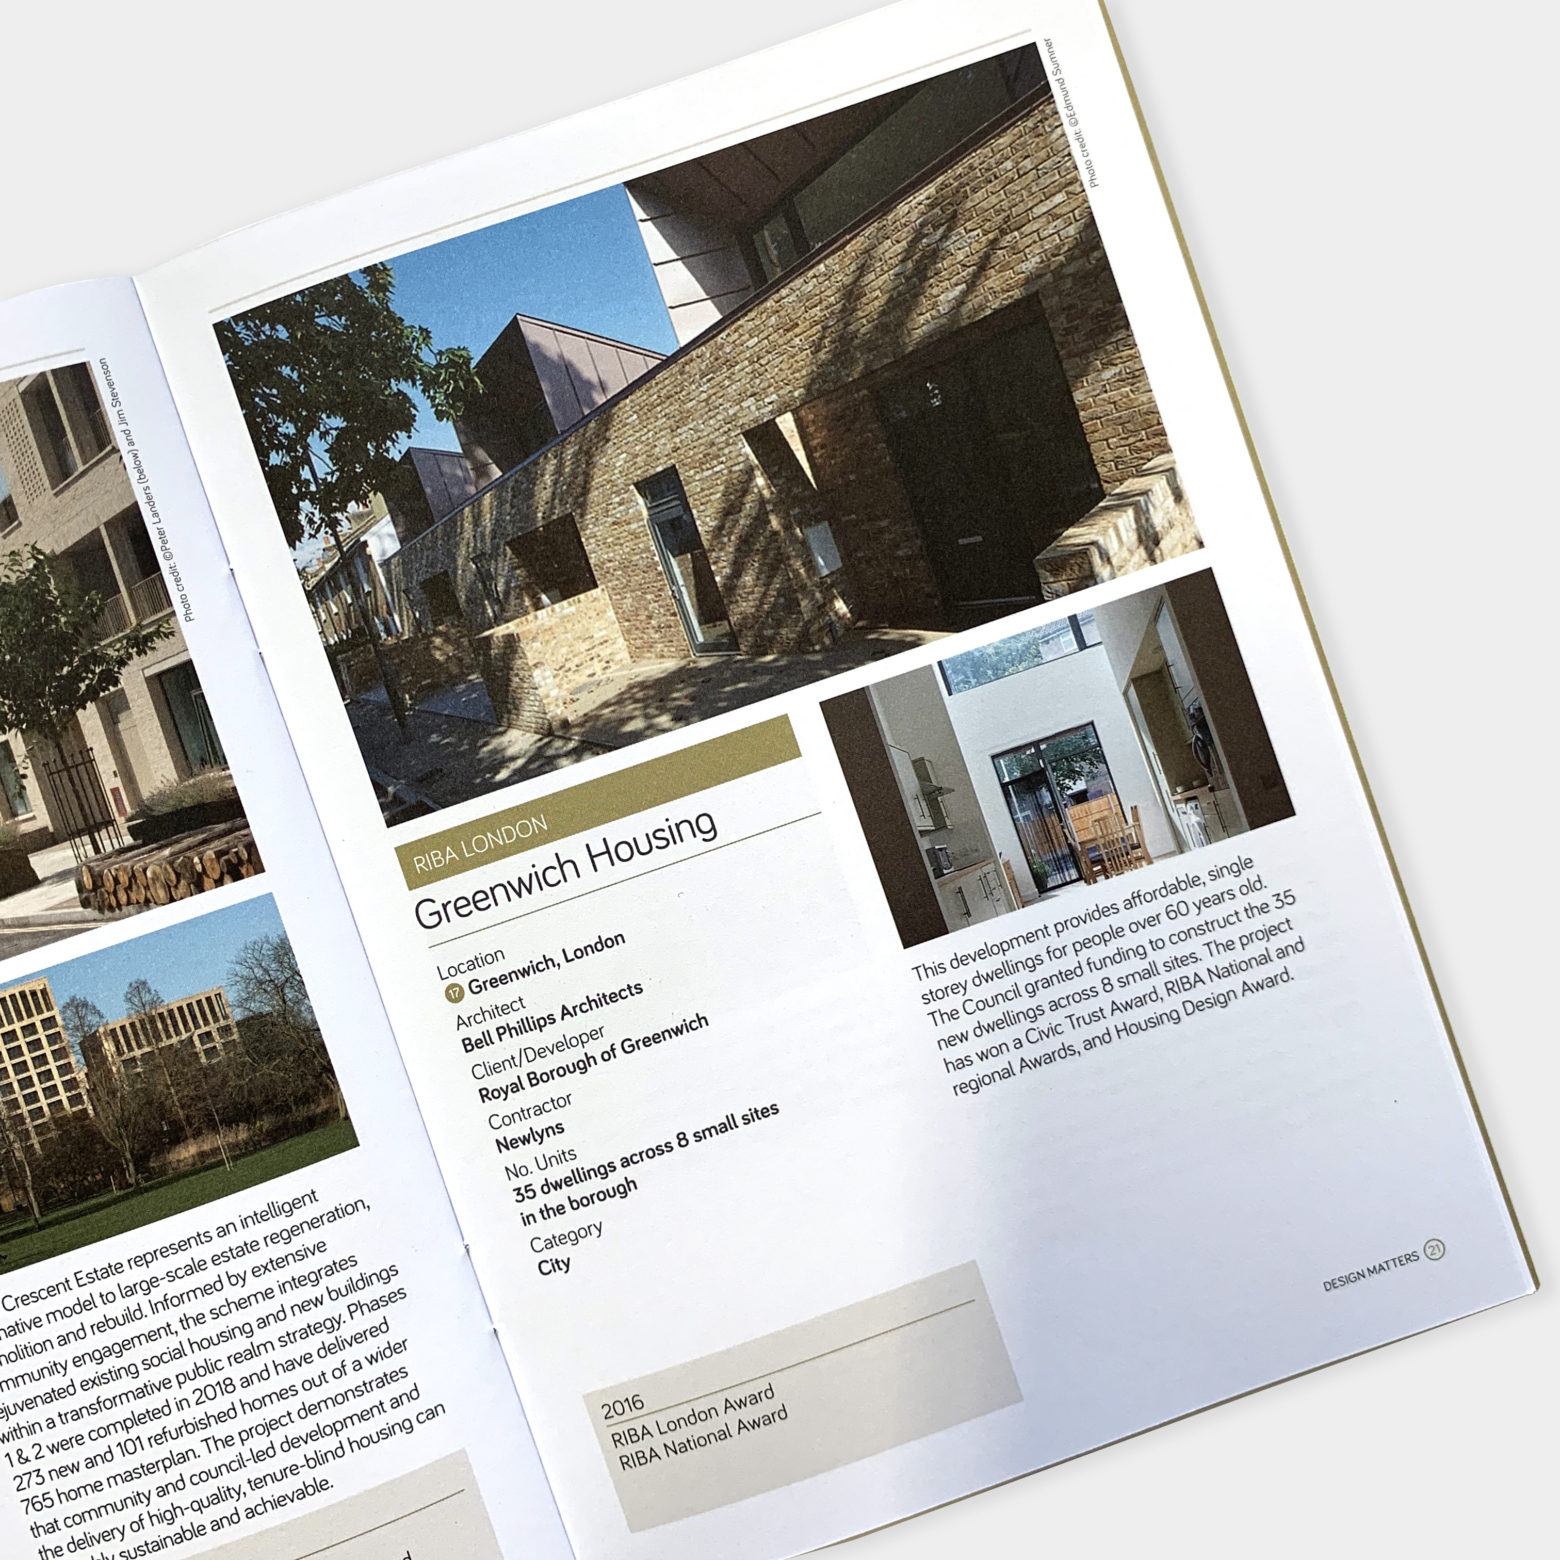 Projects included in RIBA reports